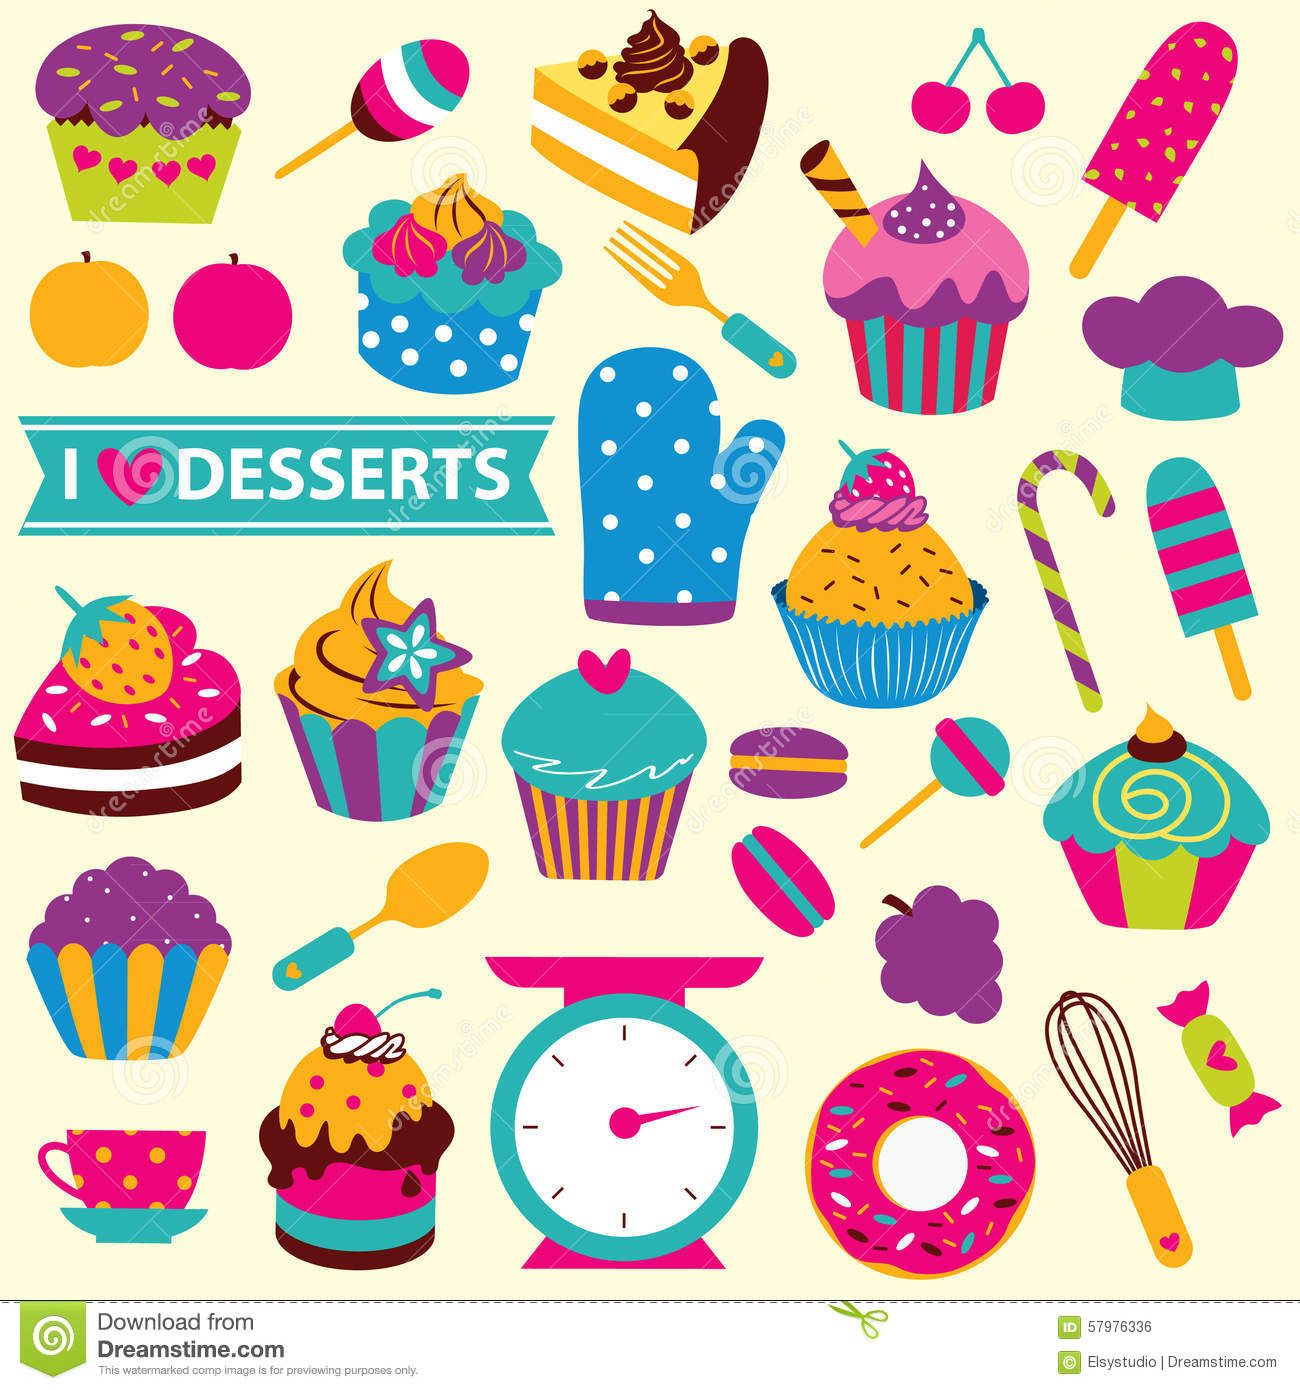 cupcakes elements clip art set cute desserts kitchen 57976336 jpg rh pinterest ca clip art desert palm photo clip art desert palm